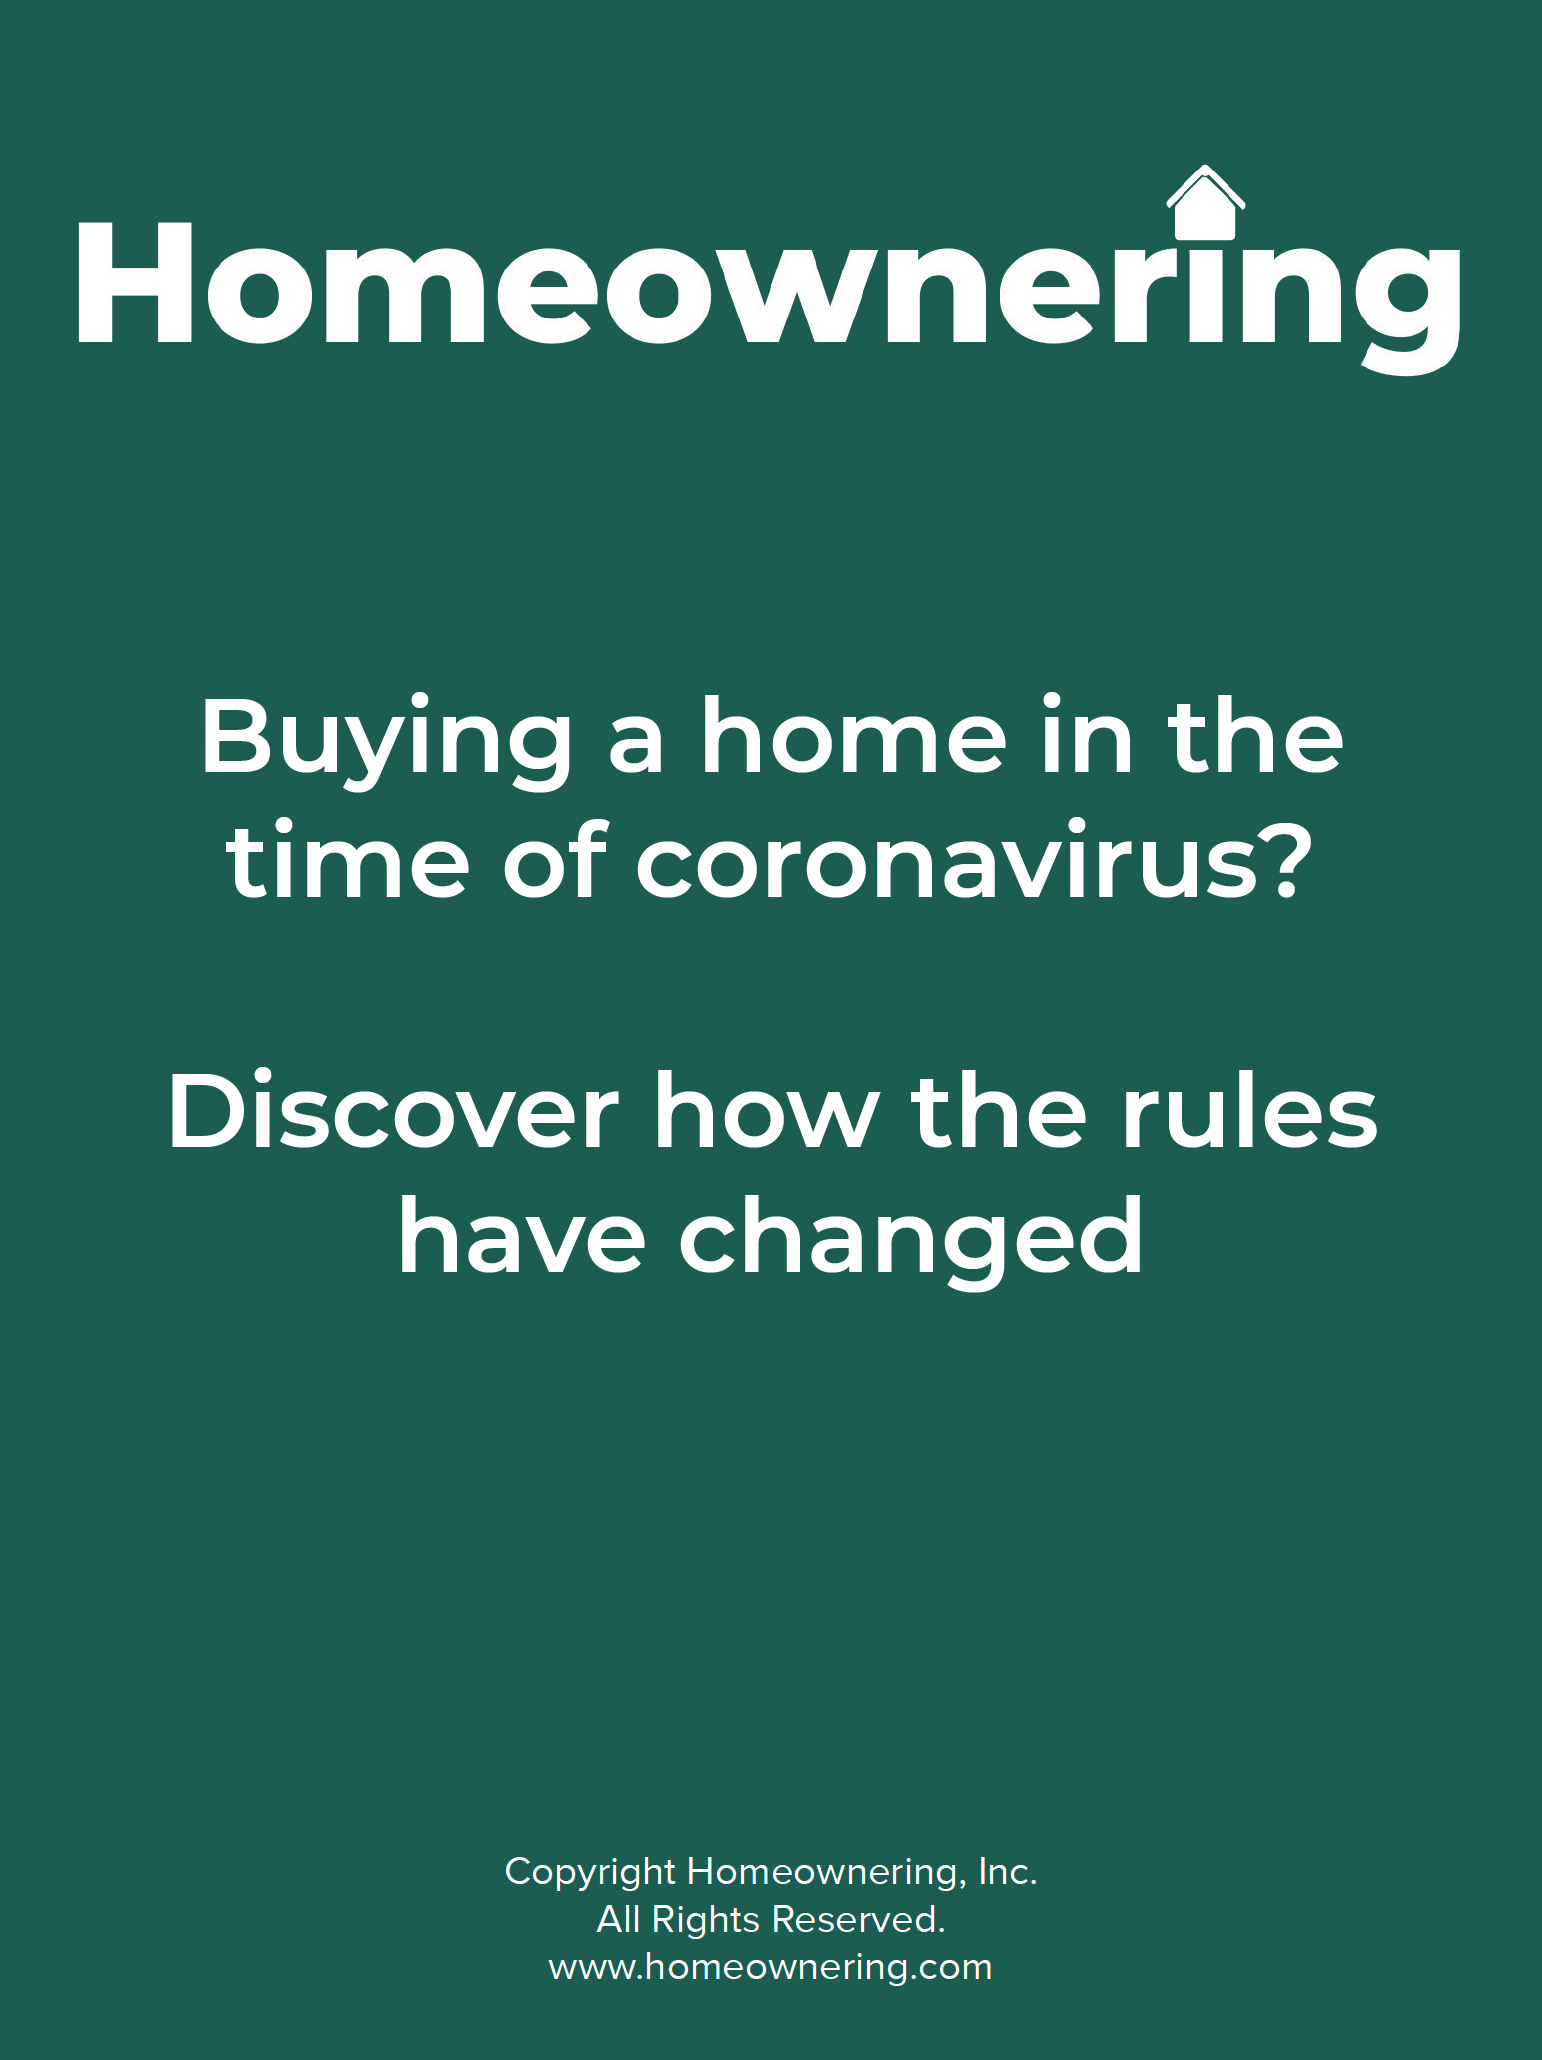 Buying a home during the coronavirus